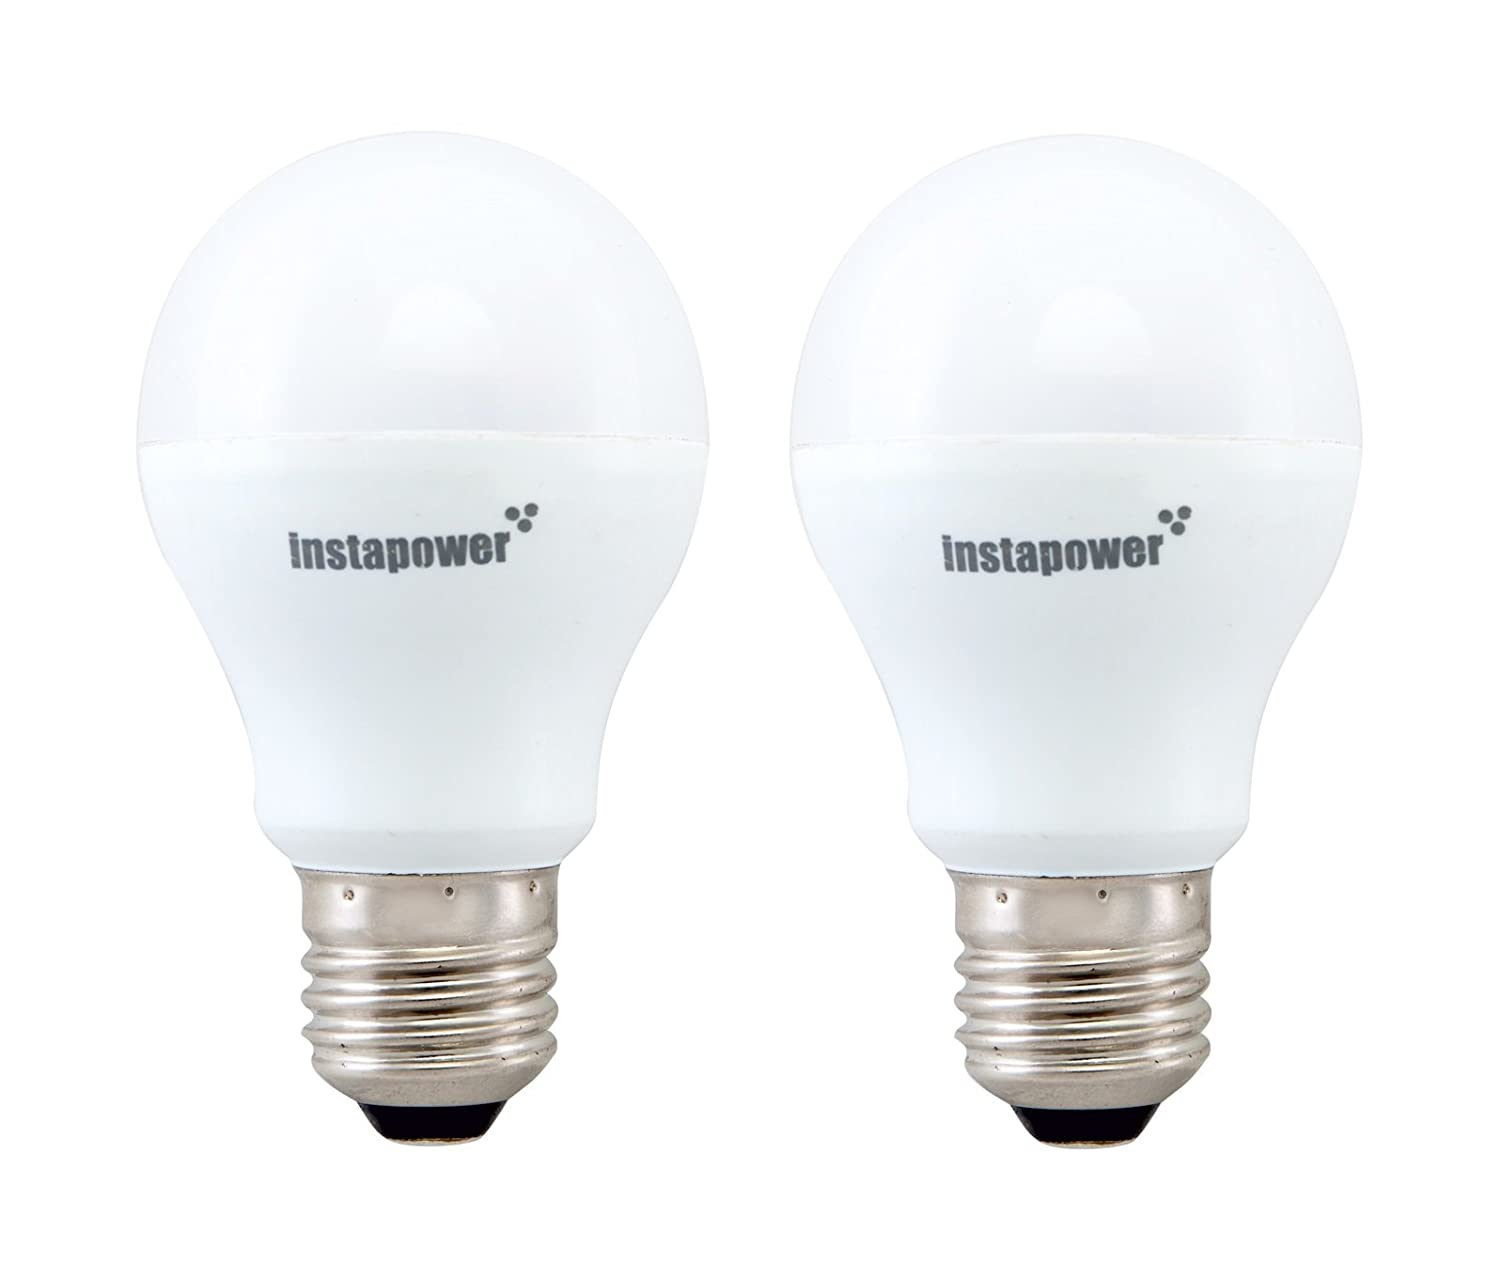 Instapower 5W LED Bulbs (White, Pack of 2) low price